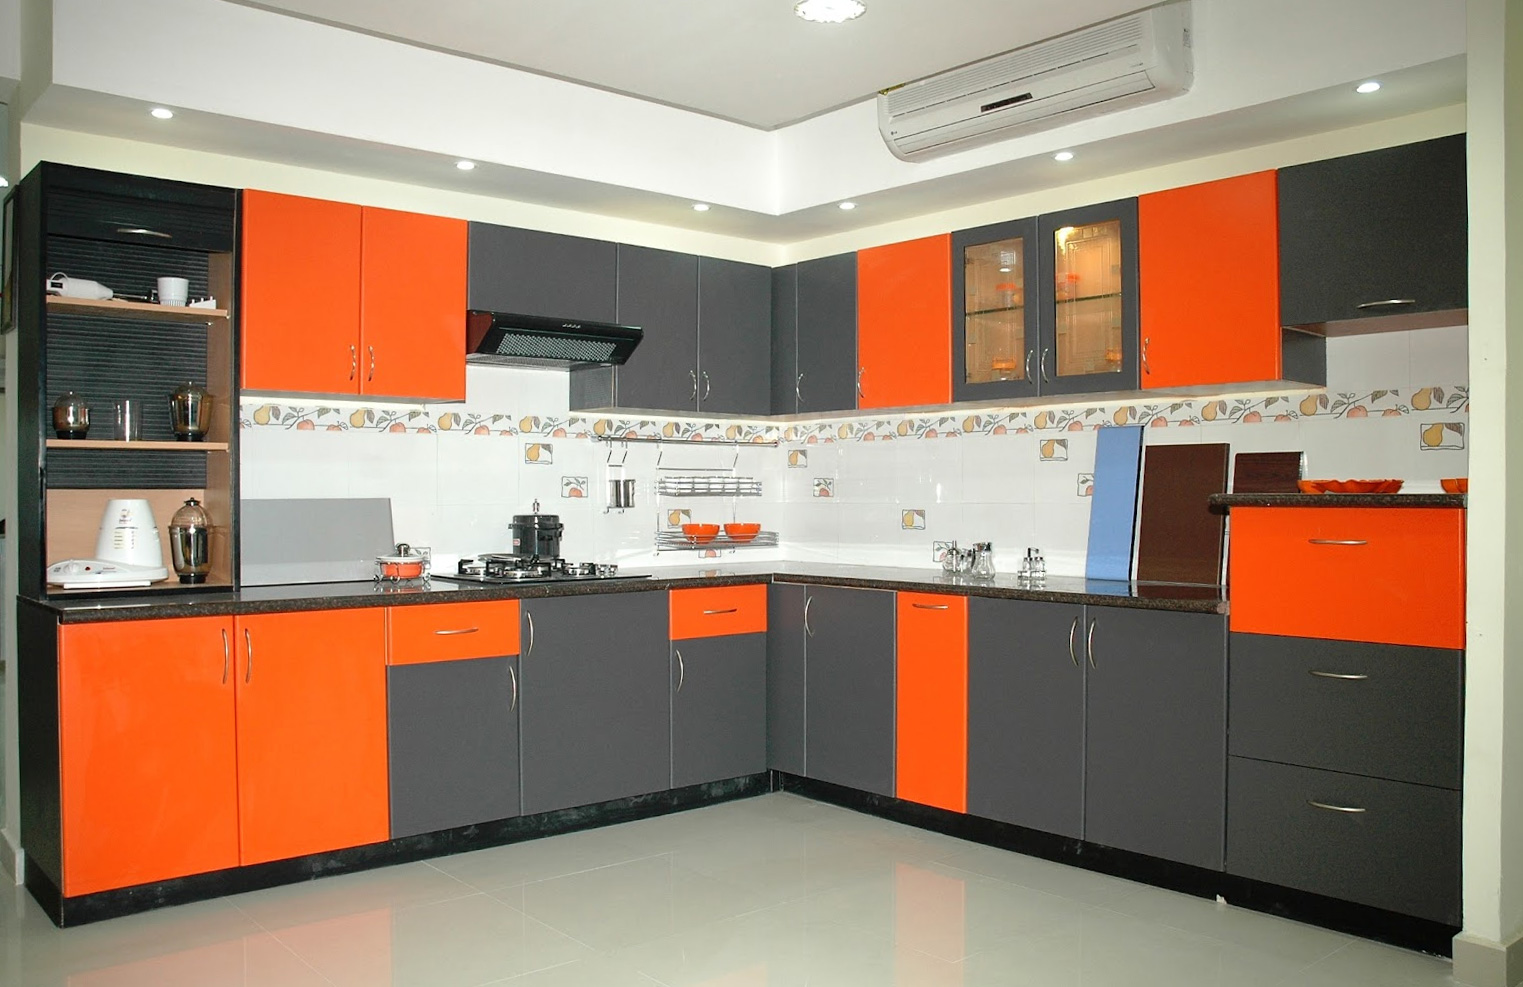 Designing Kitchen Cabinets Aadhavan Sai Decors Dealing With All Types Of Decors